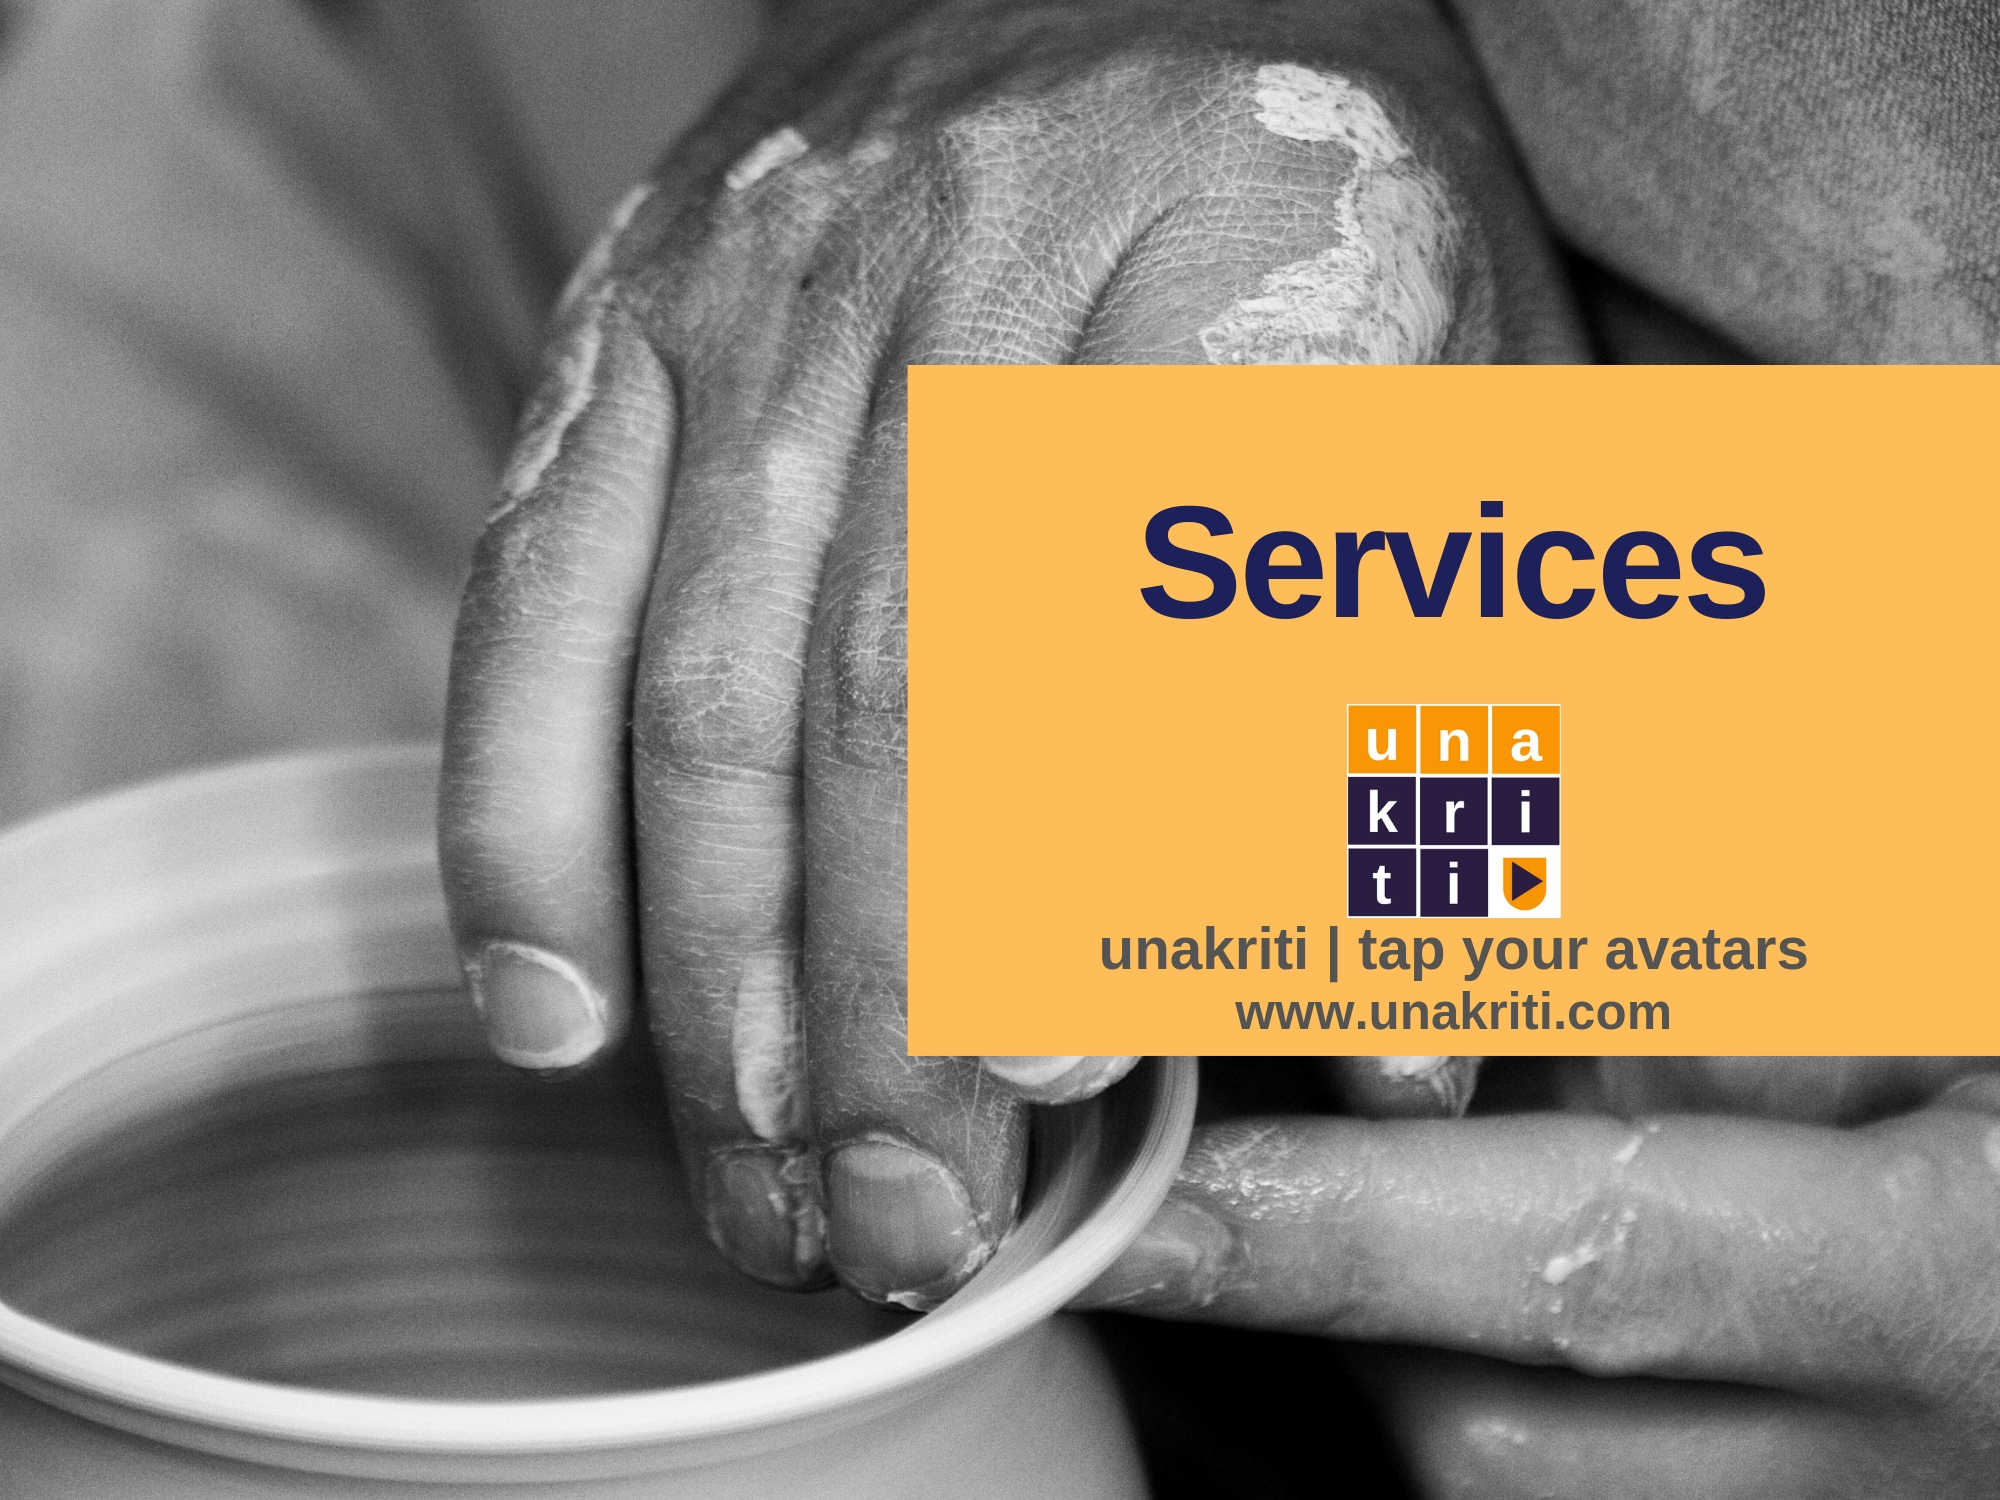 What services does Unakriti Offer?